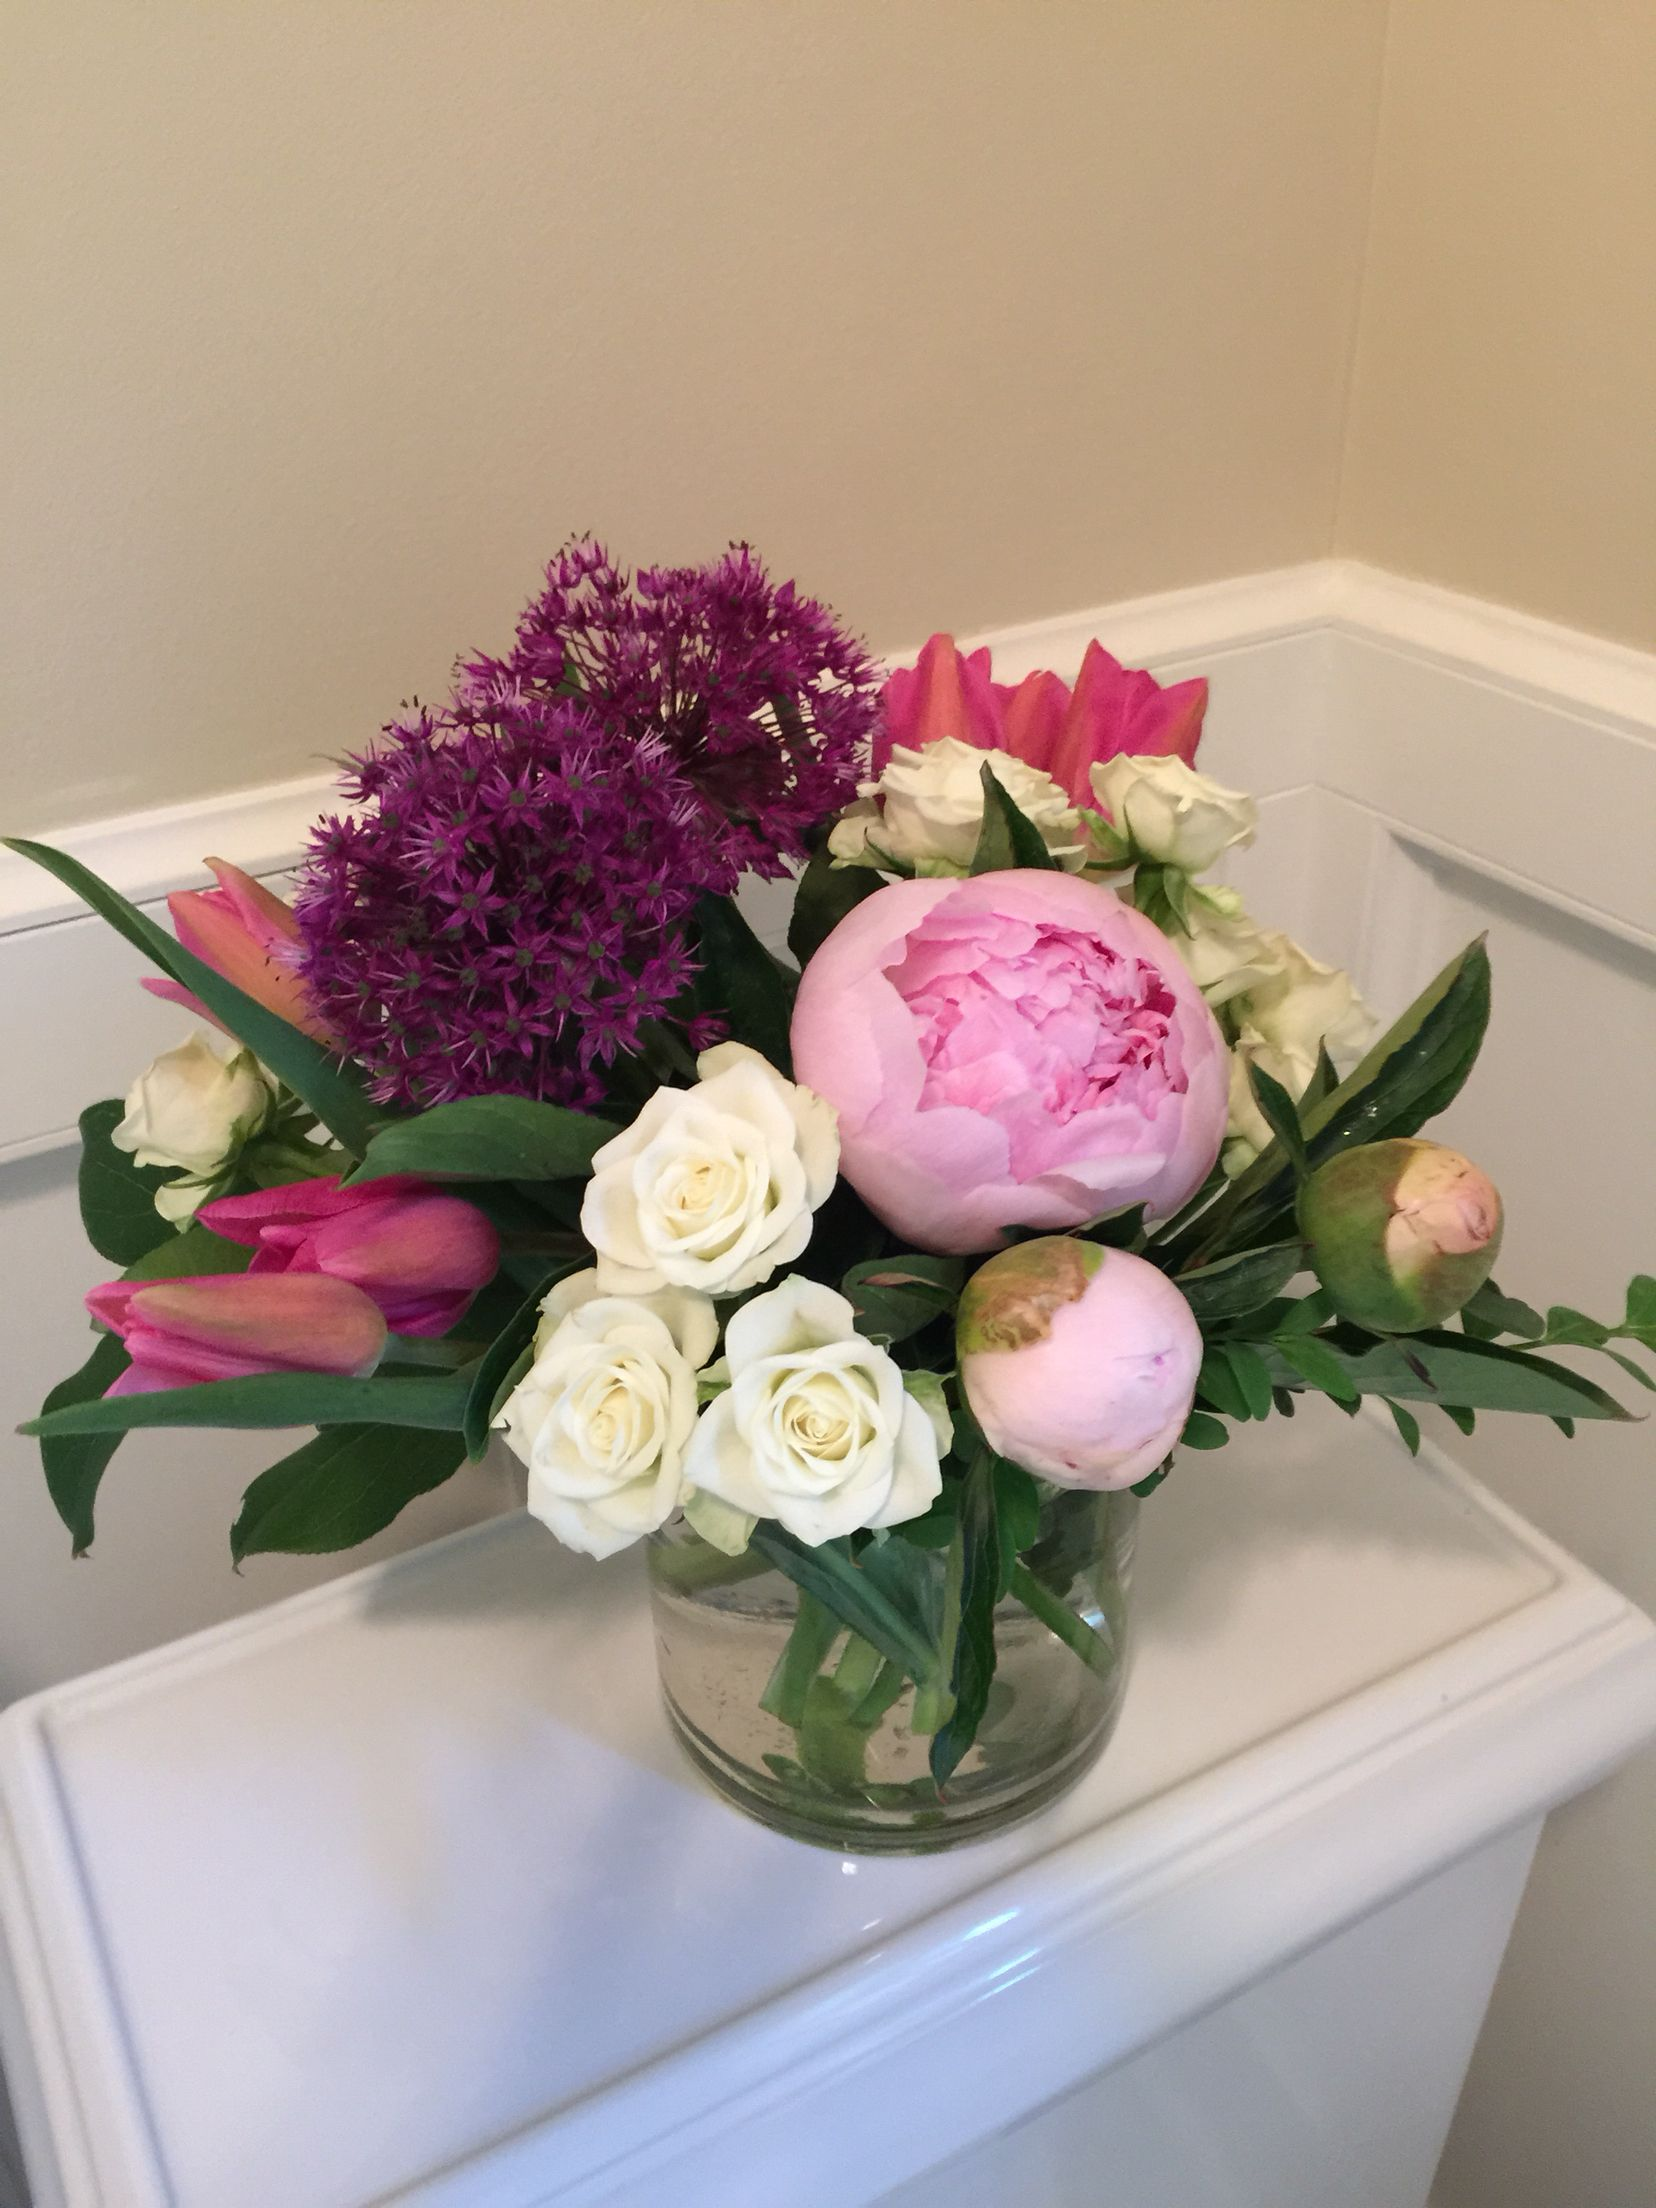 Another view of peonies allium tulips and roses